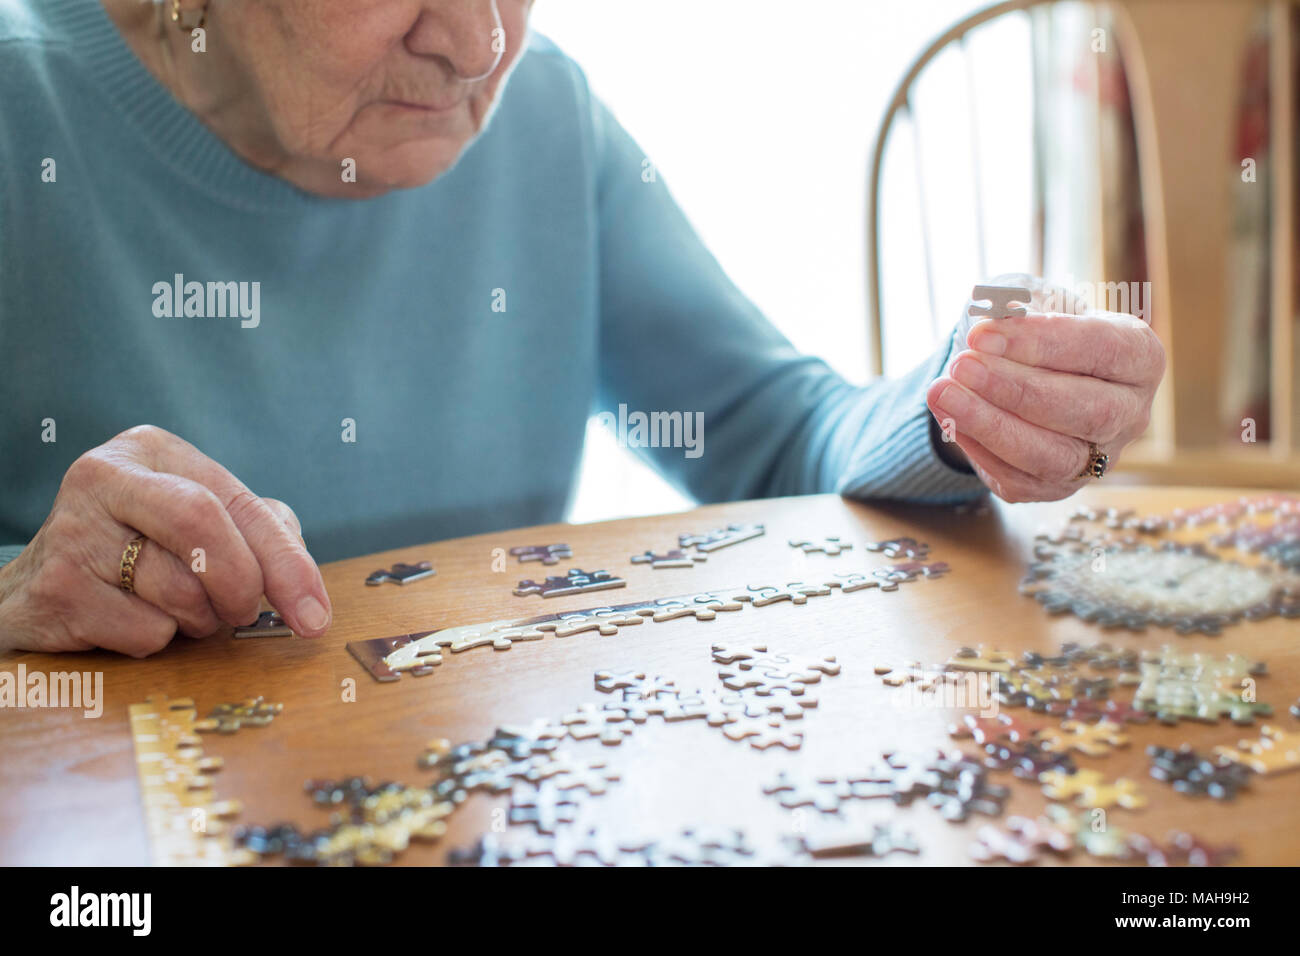 Close Up of Senior Woman Relaxing With Jigsaw Puzzle à la maison Photo Stock